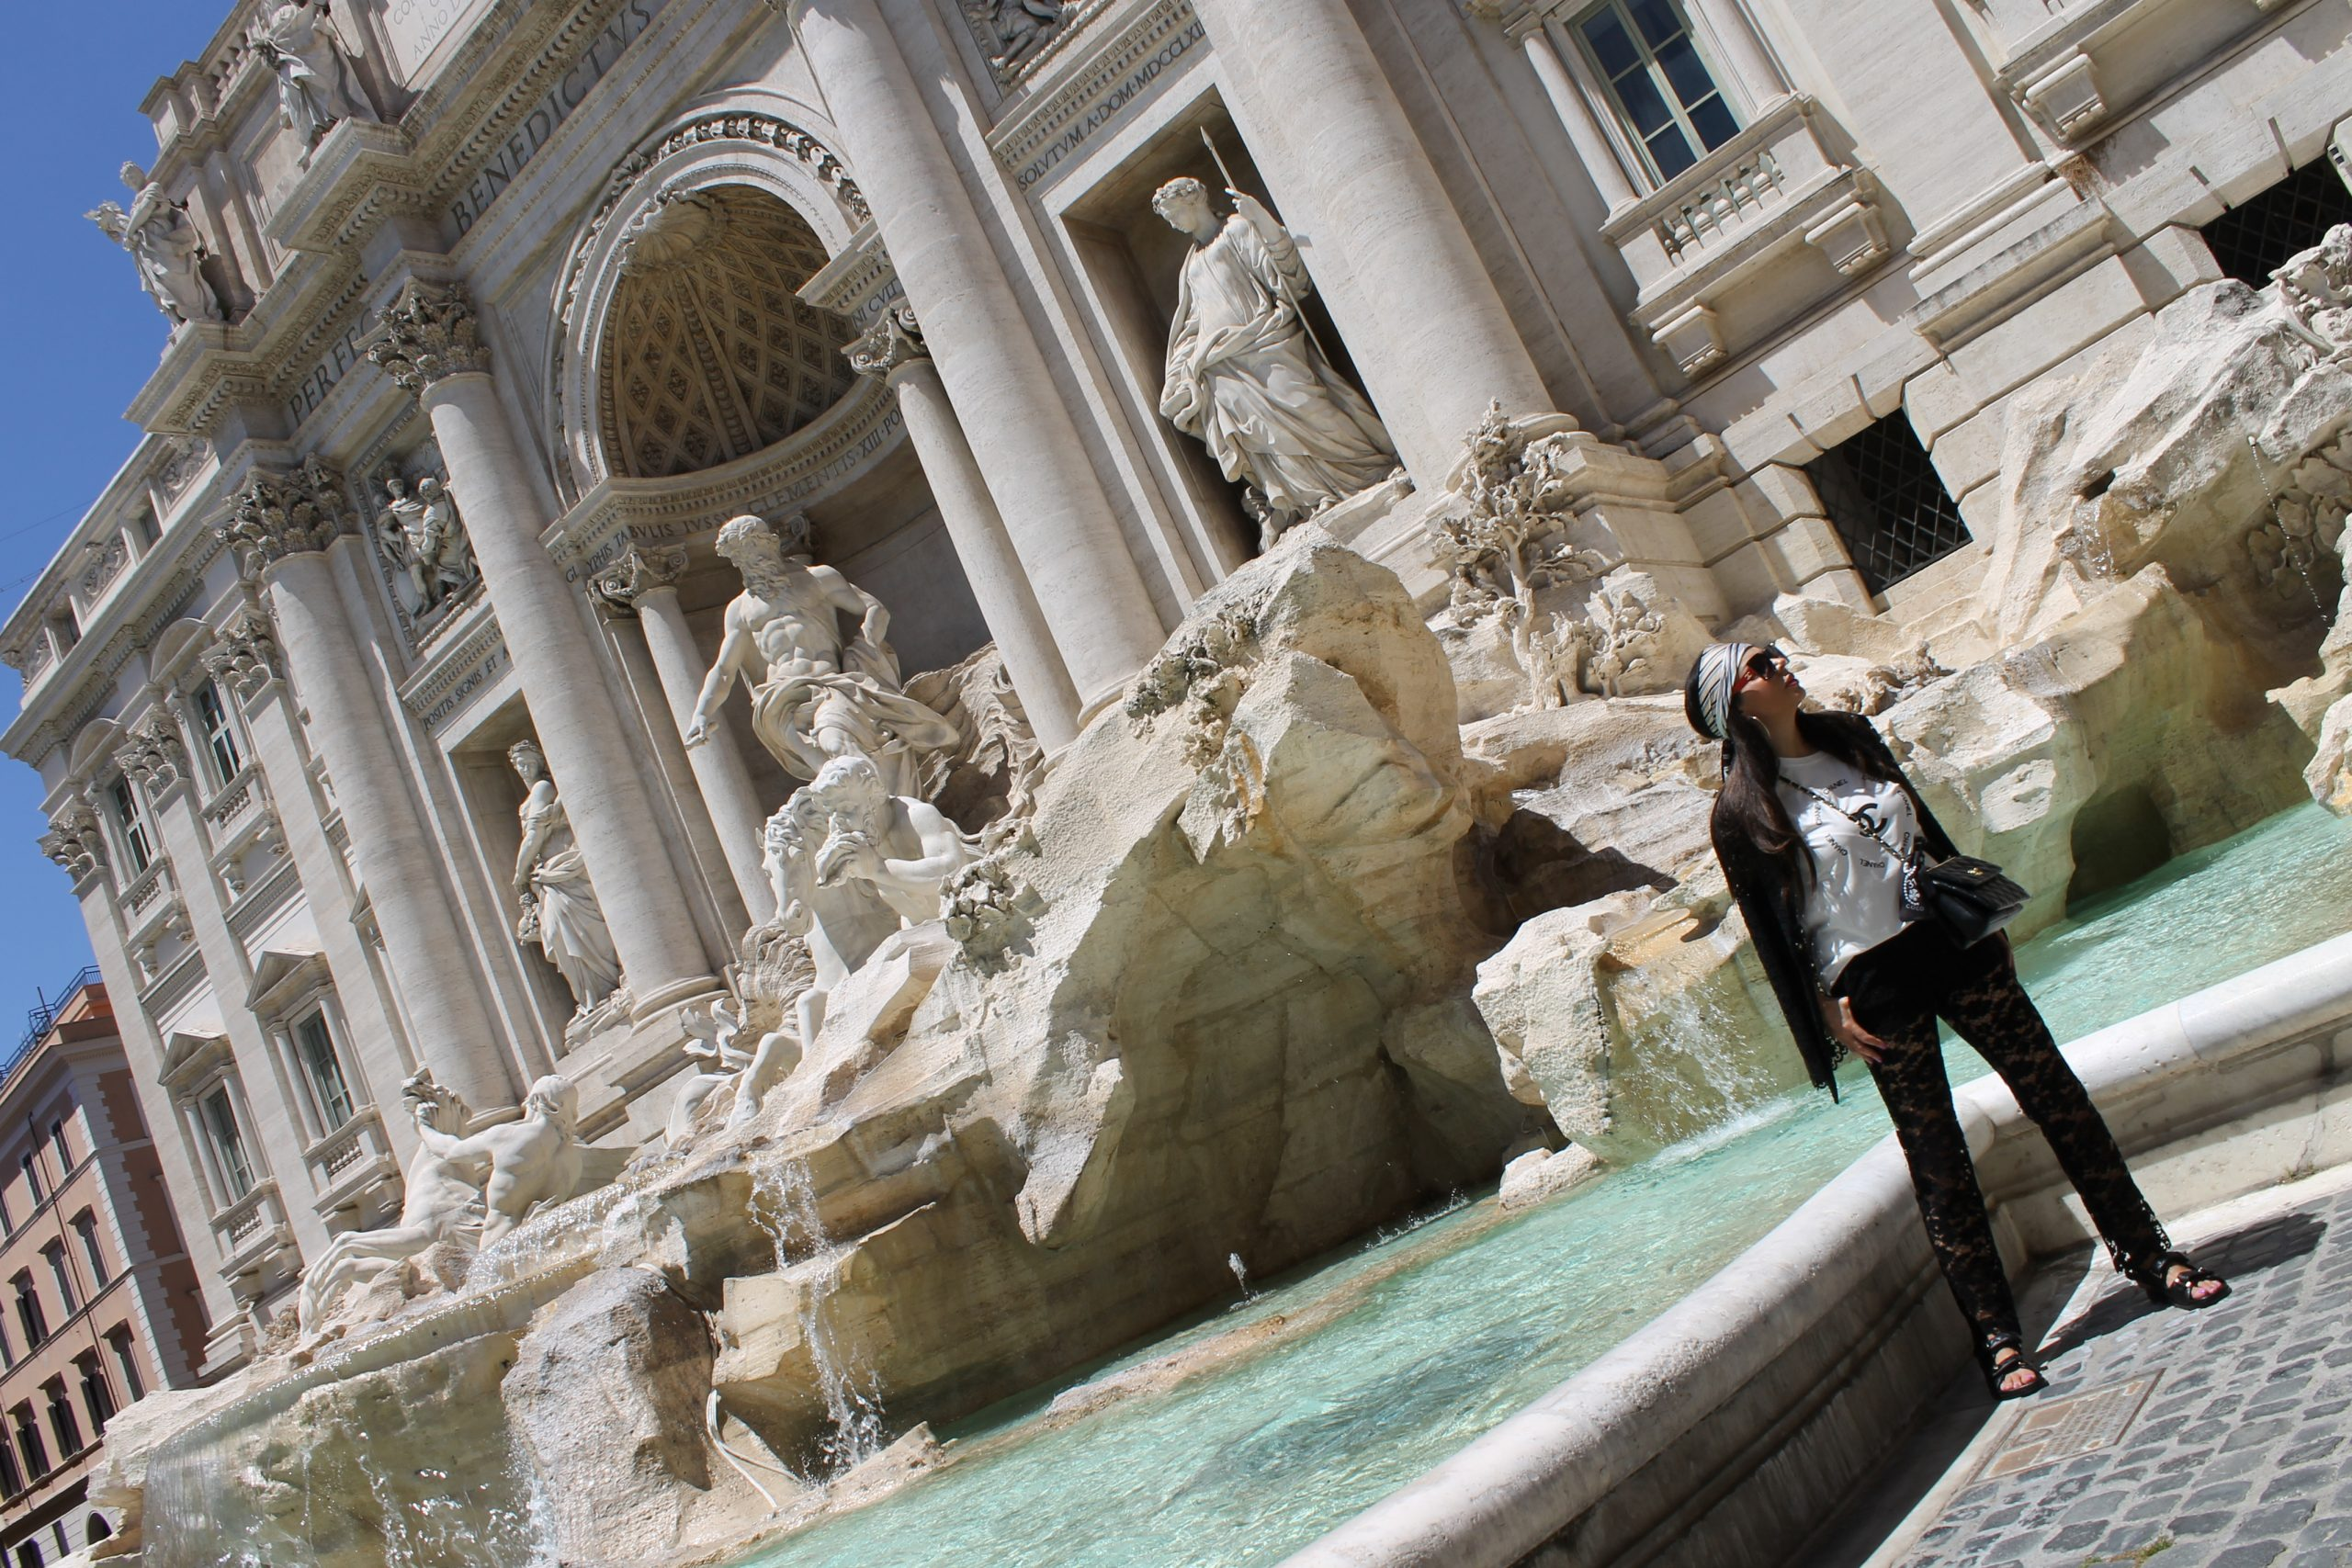 Rome Tour Italy Staycation Fountain of Trevi Shooting Chanel Look Paola Lauretano